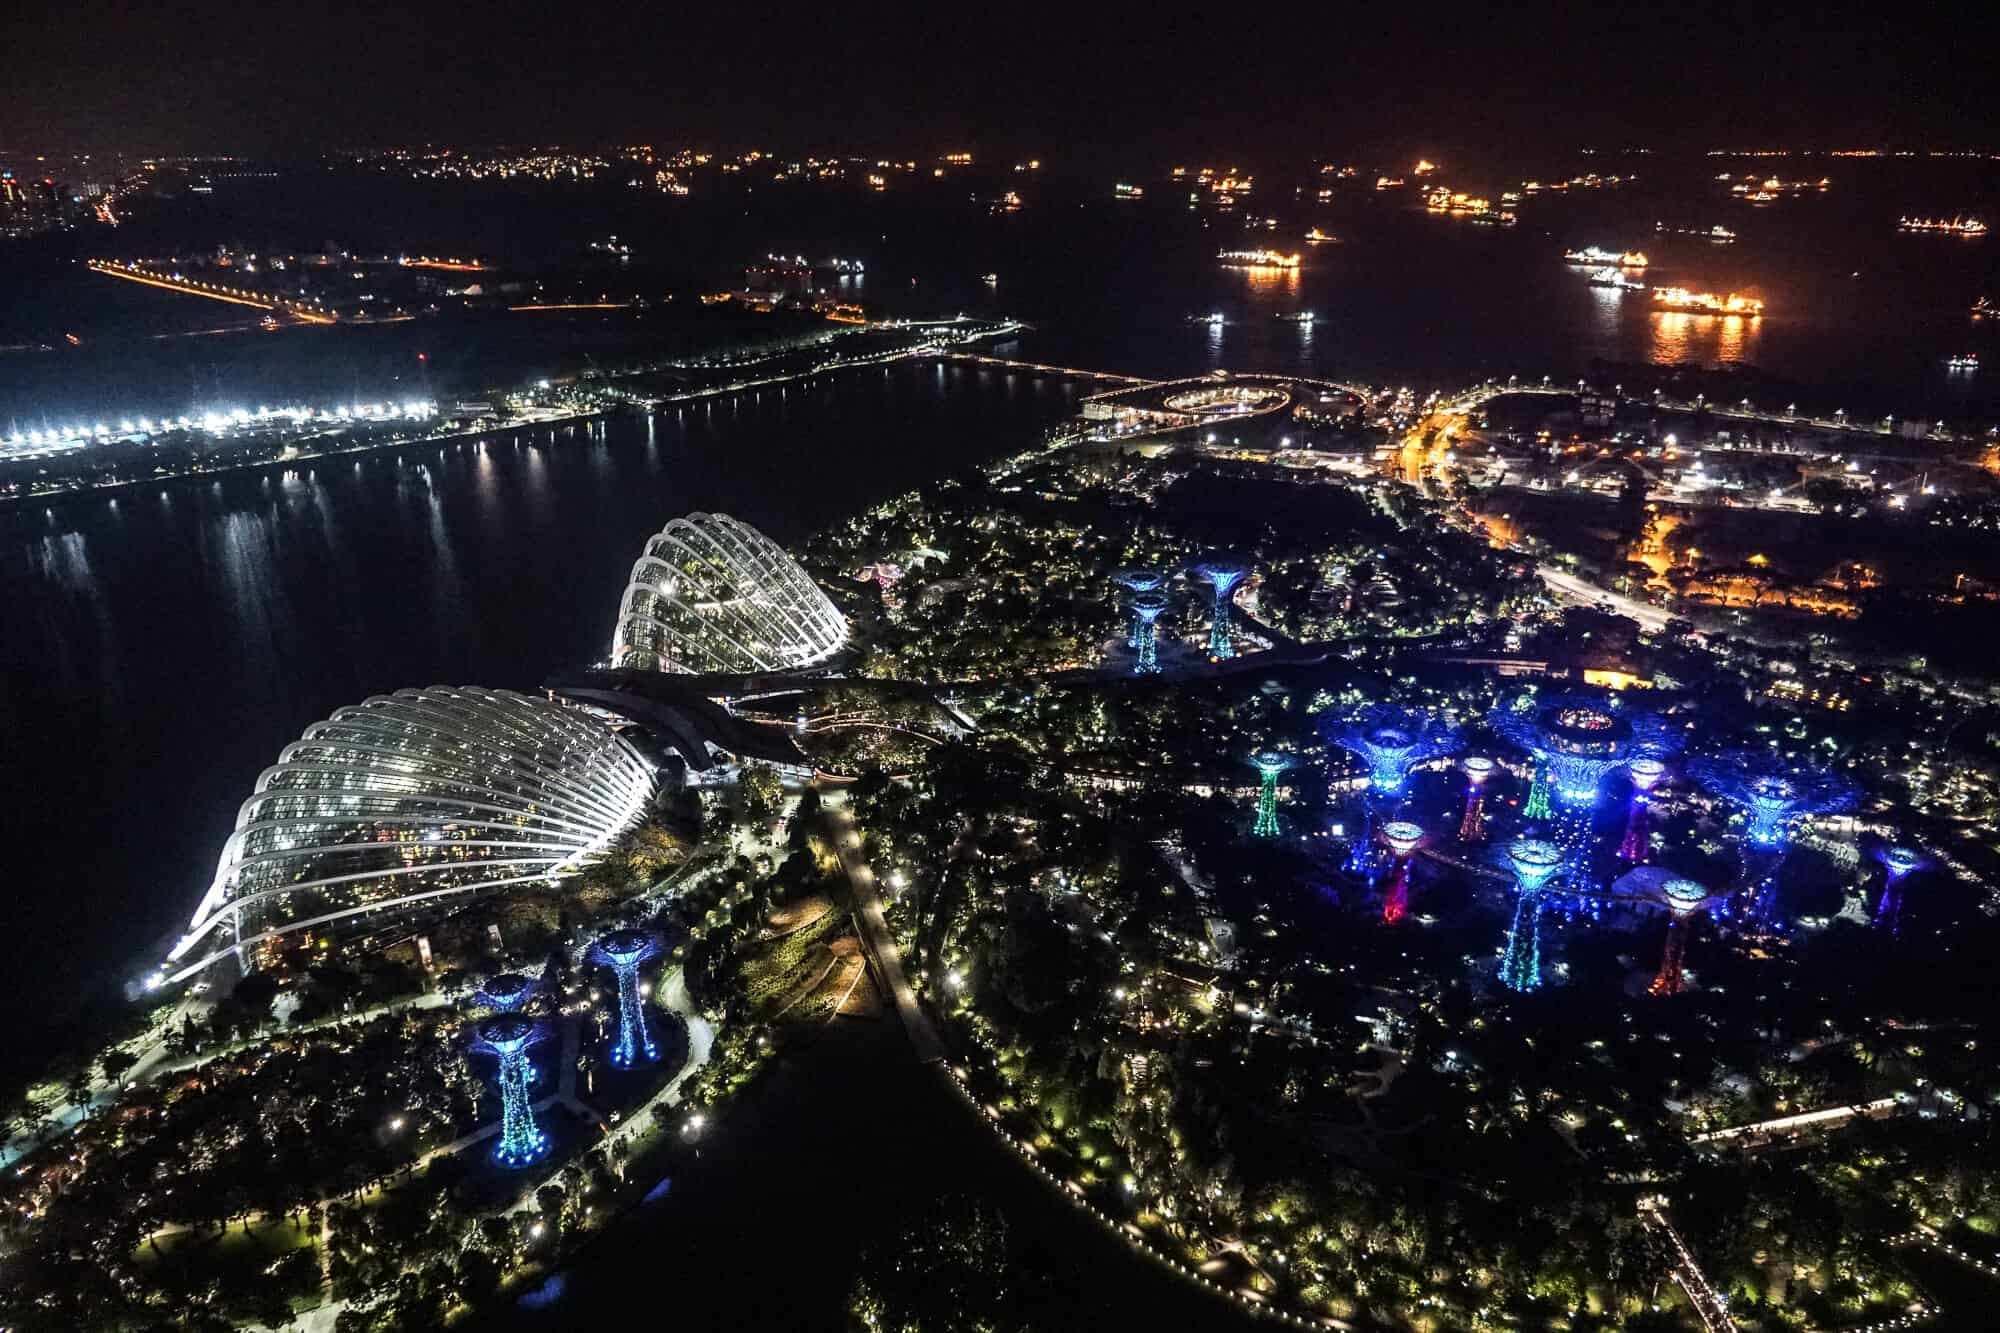 Gardens by the Bay – Marina Bay Sands SkyPark